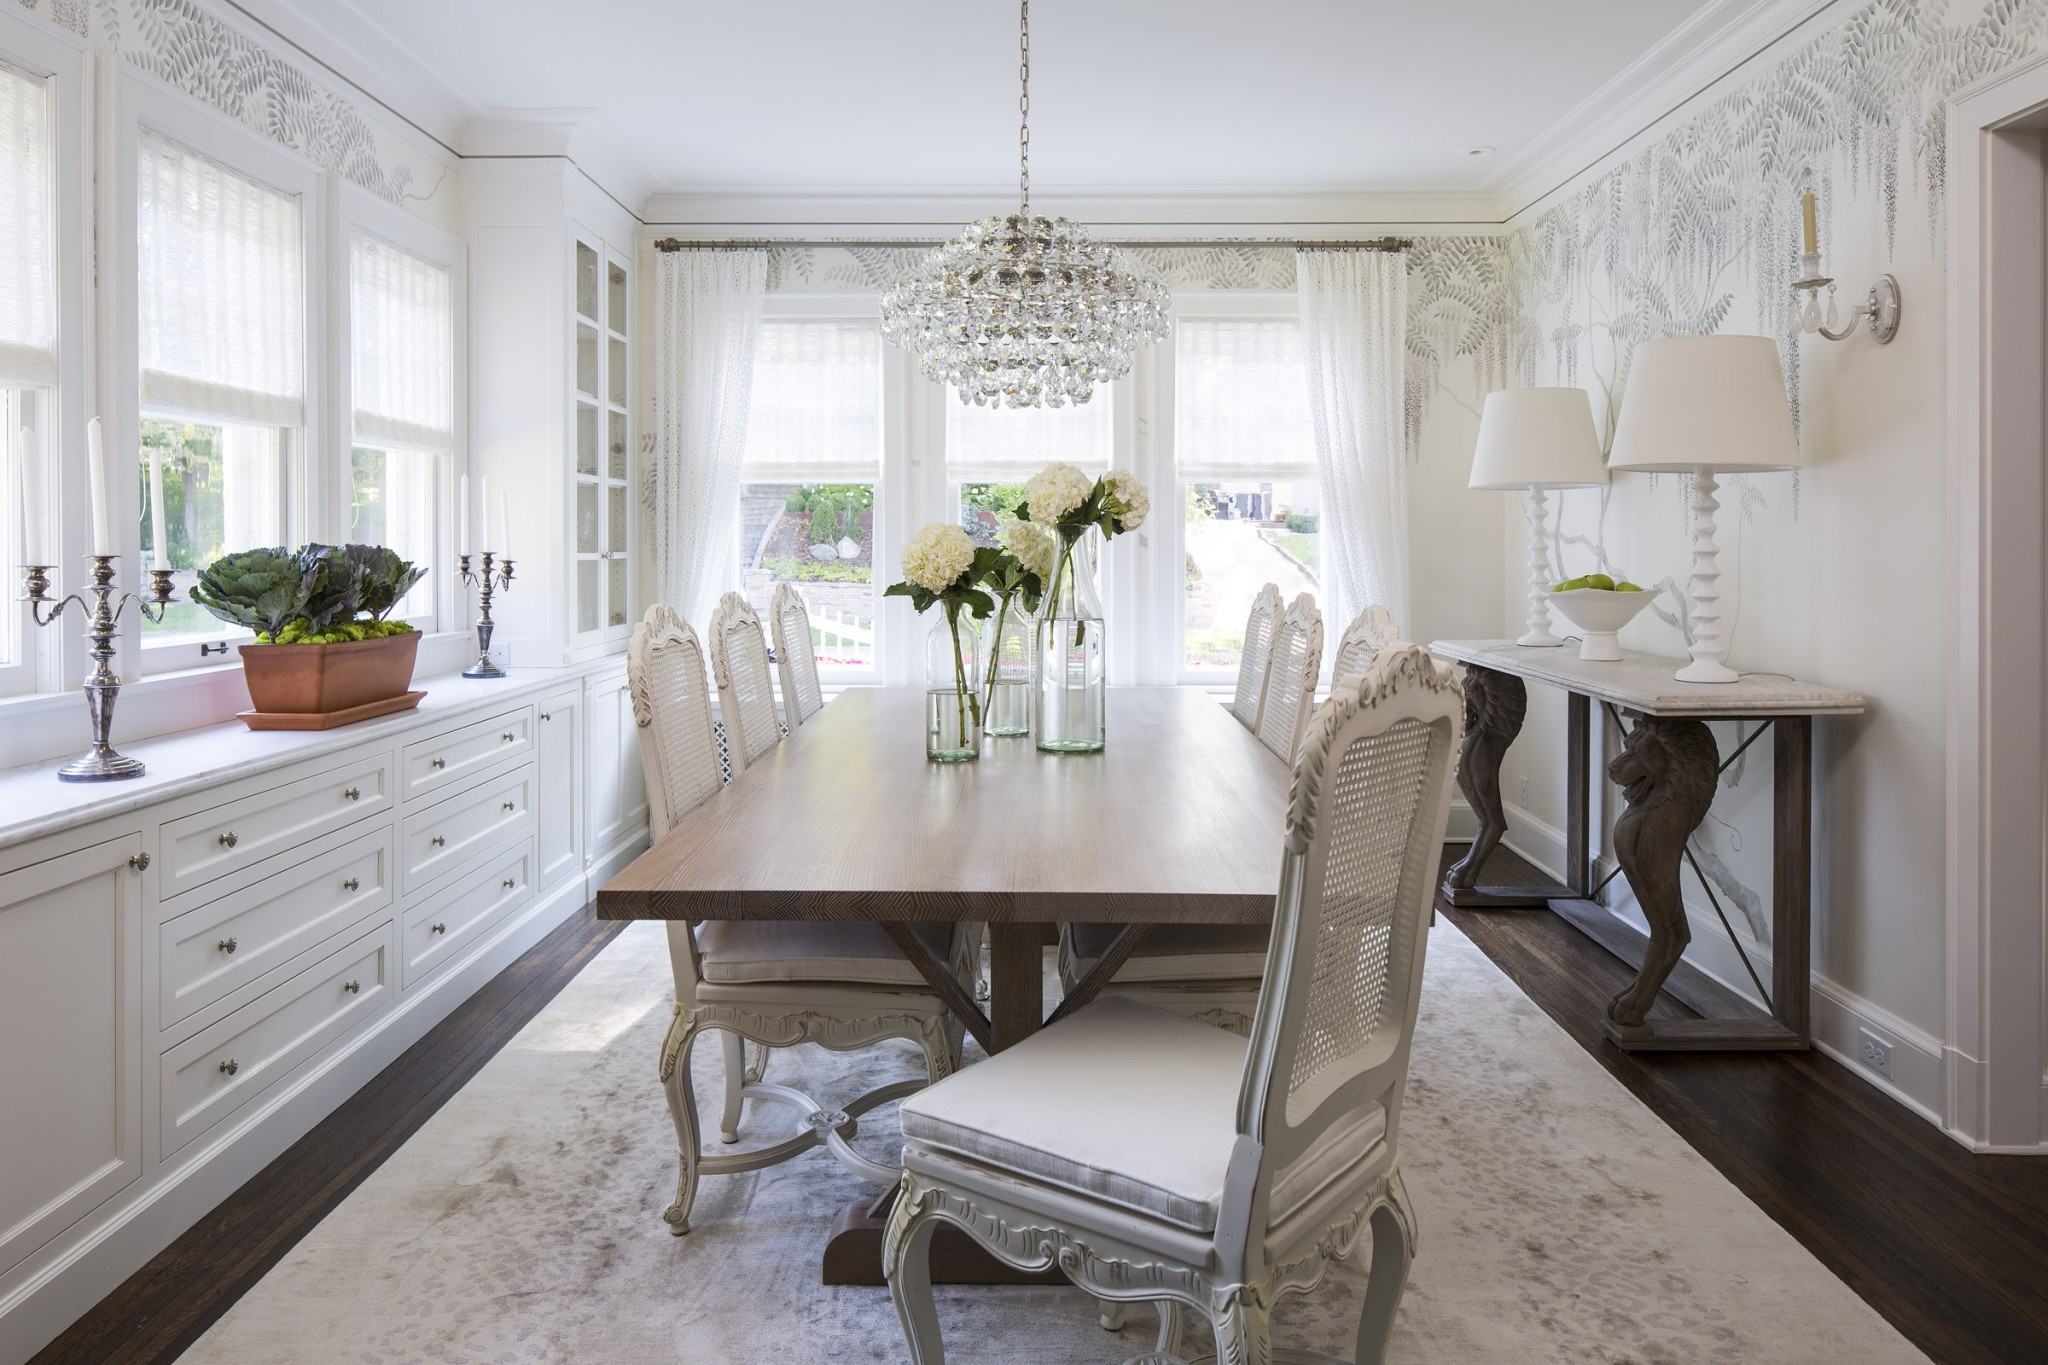 Classic Style Furniture fro Practical Chic Interiors. Flower theme in the white harmony of the room